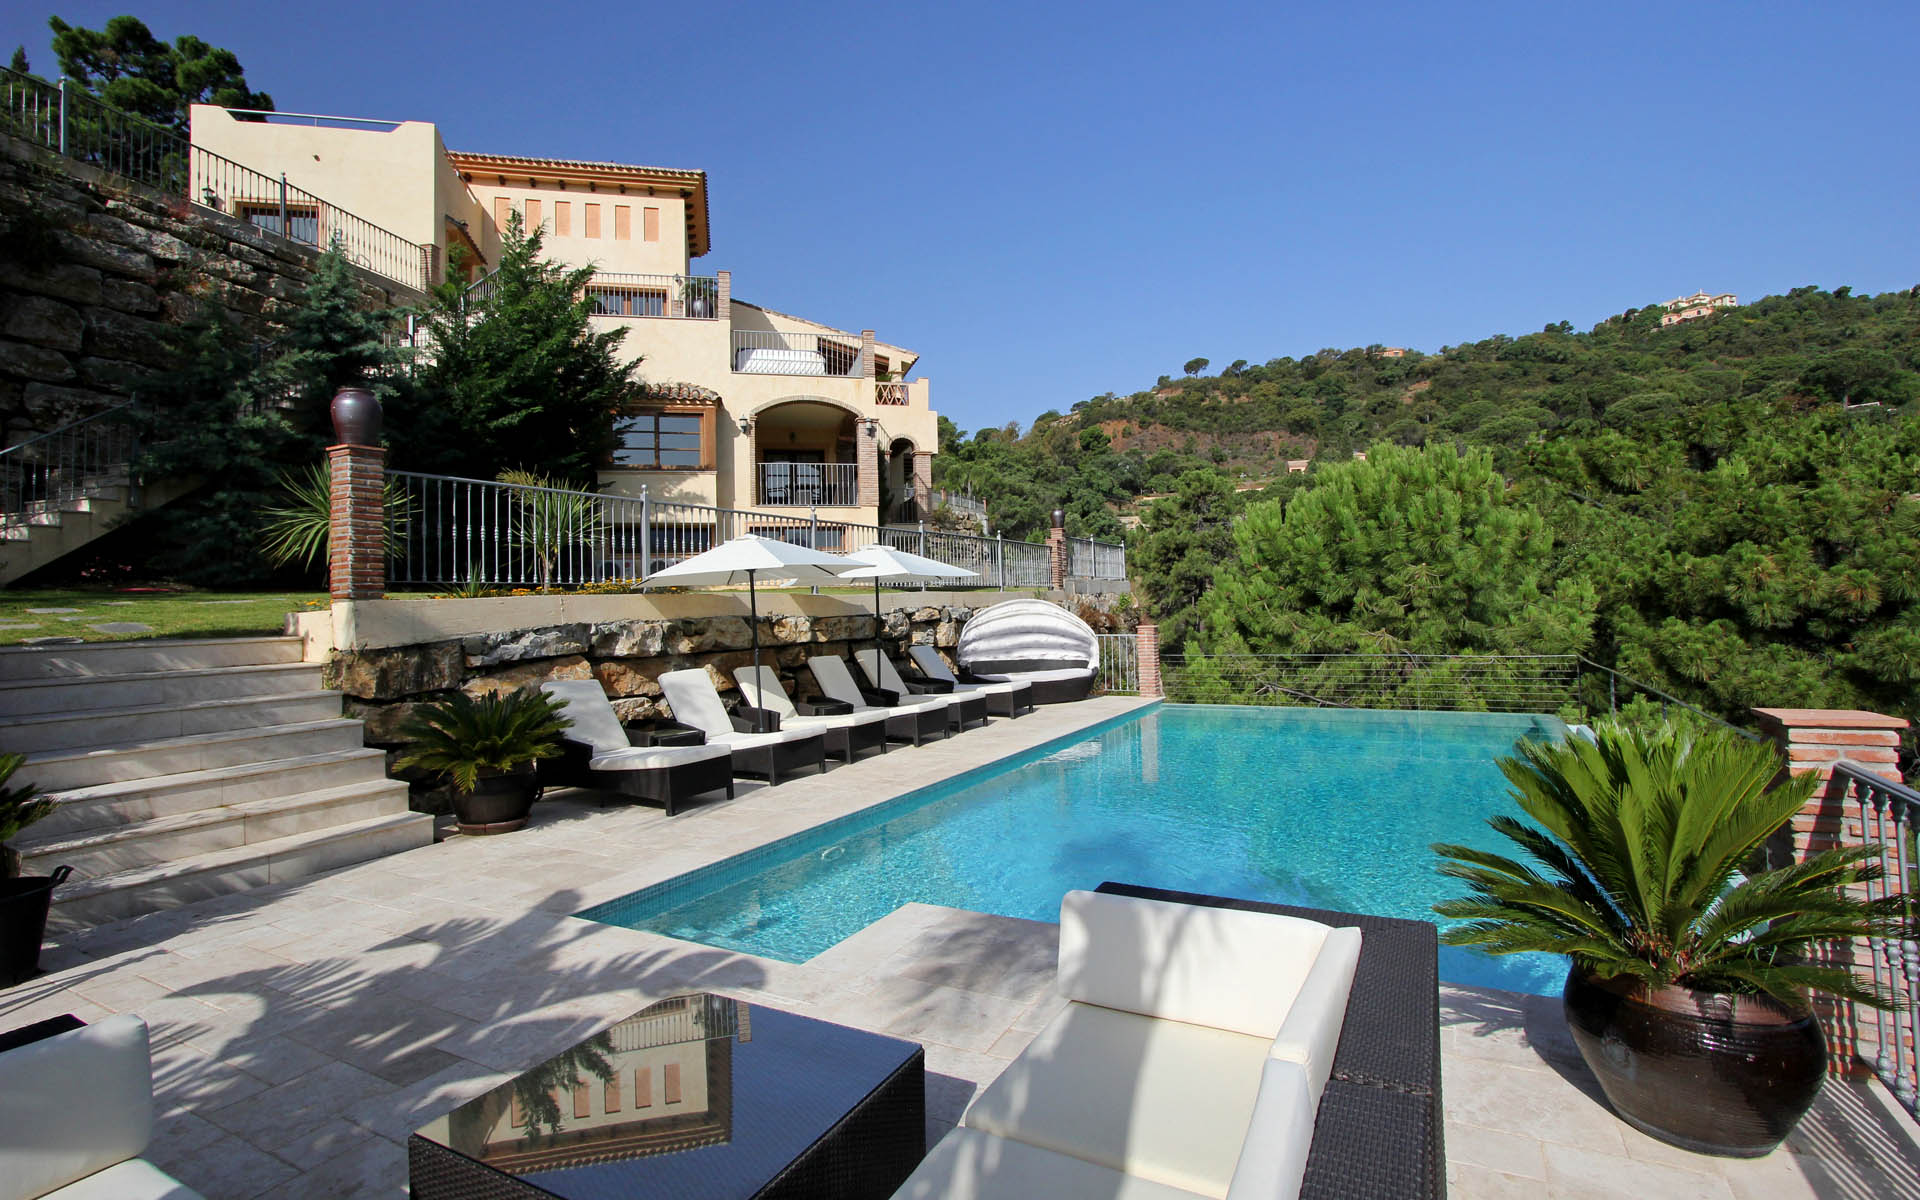 Great Private Villas In Spain To Rent With Pools